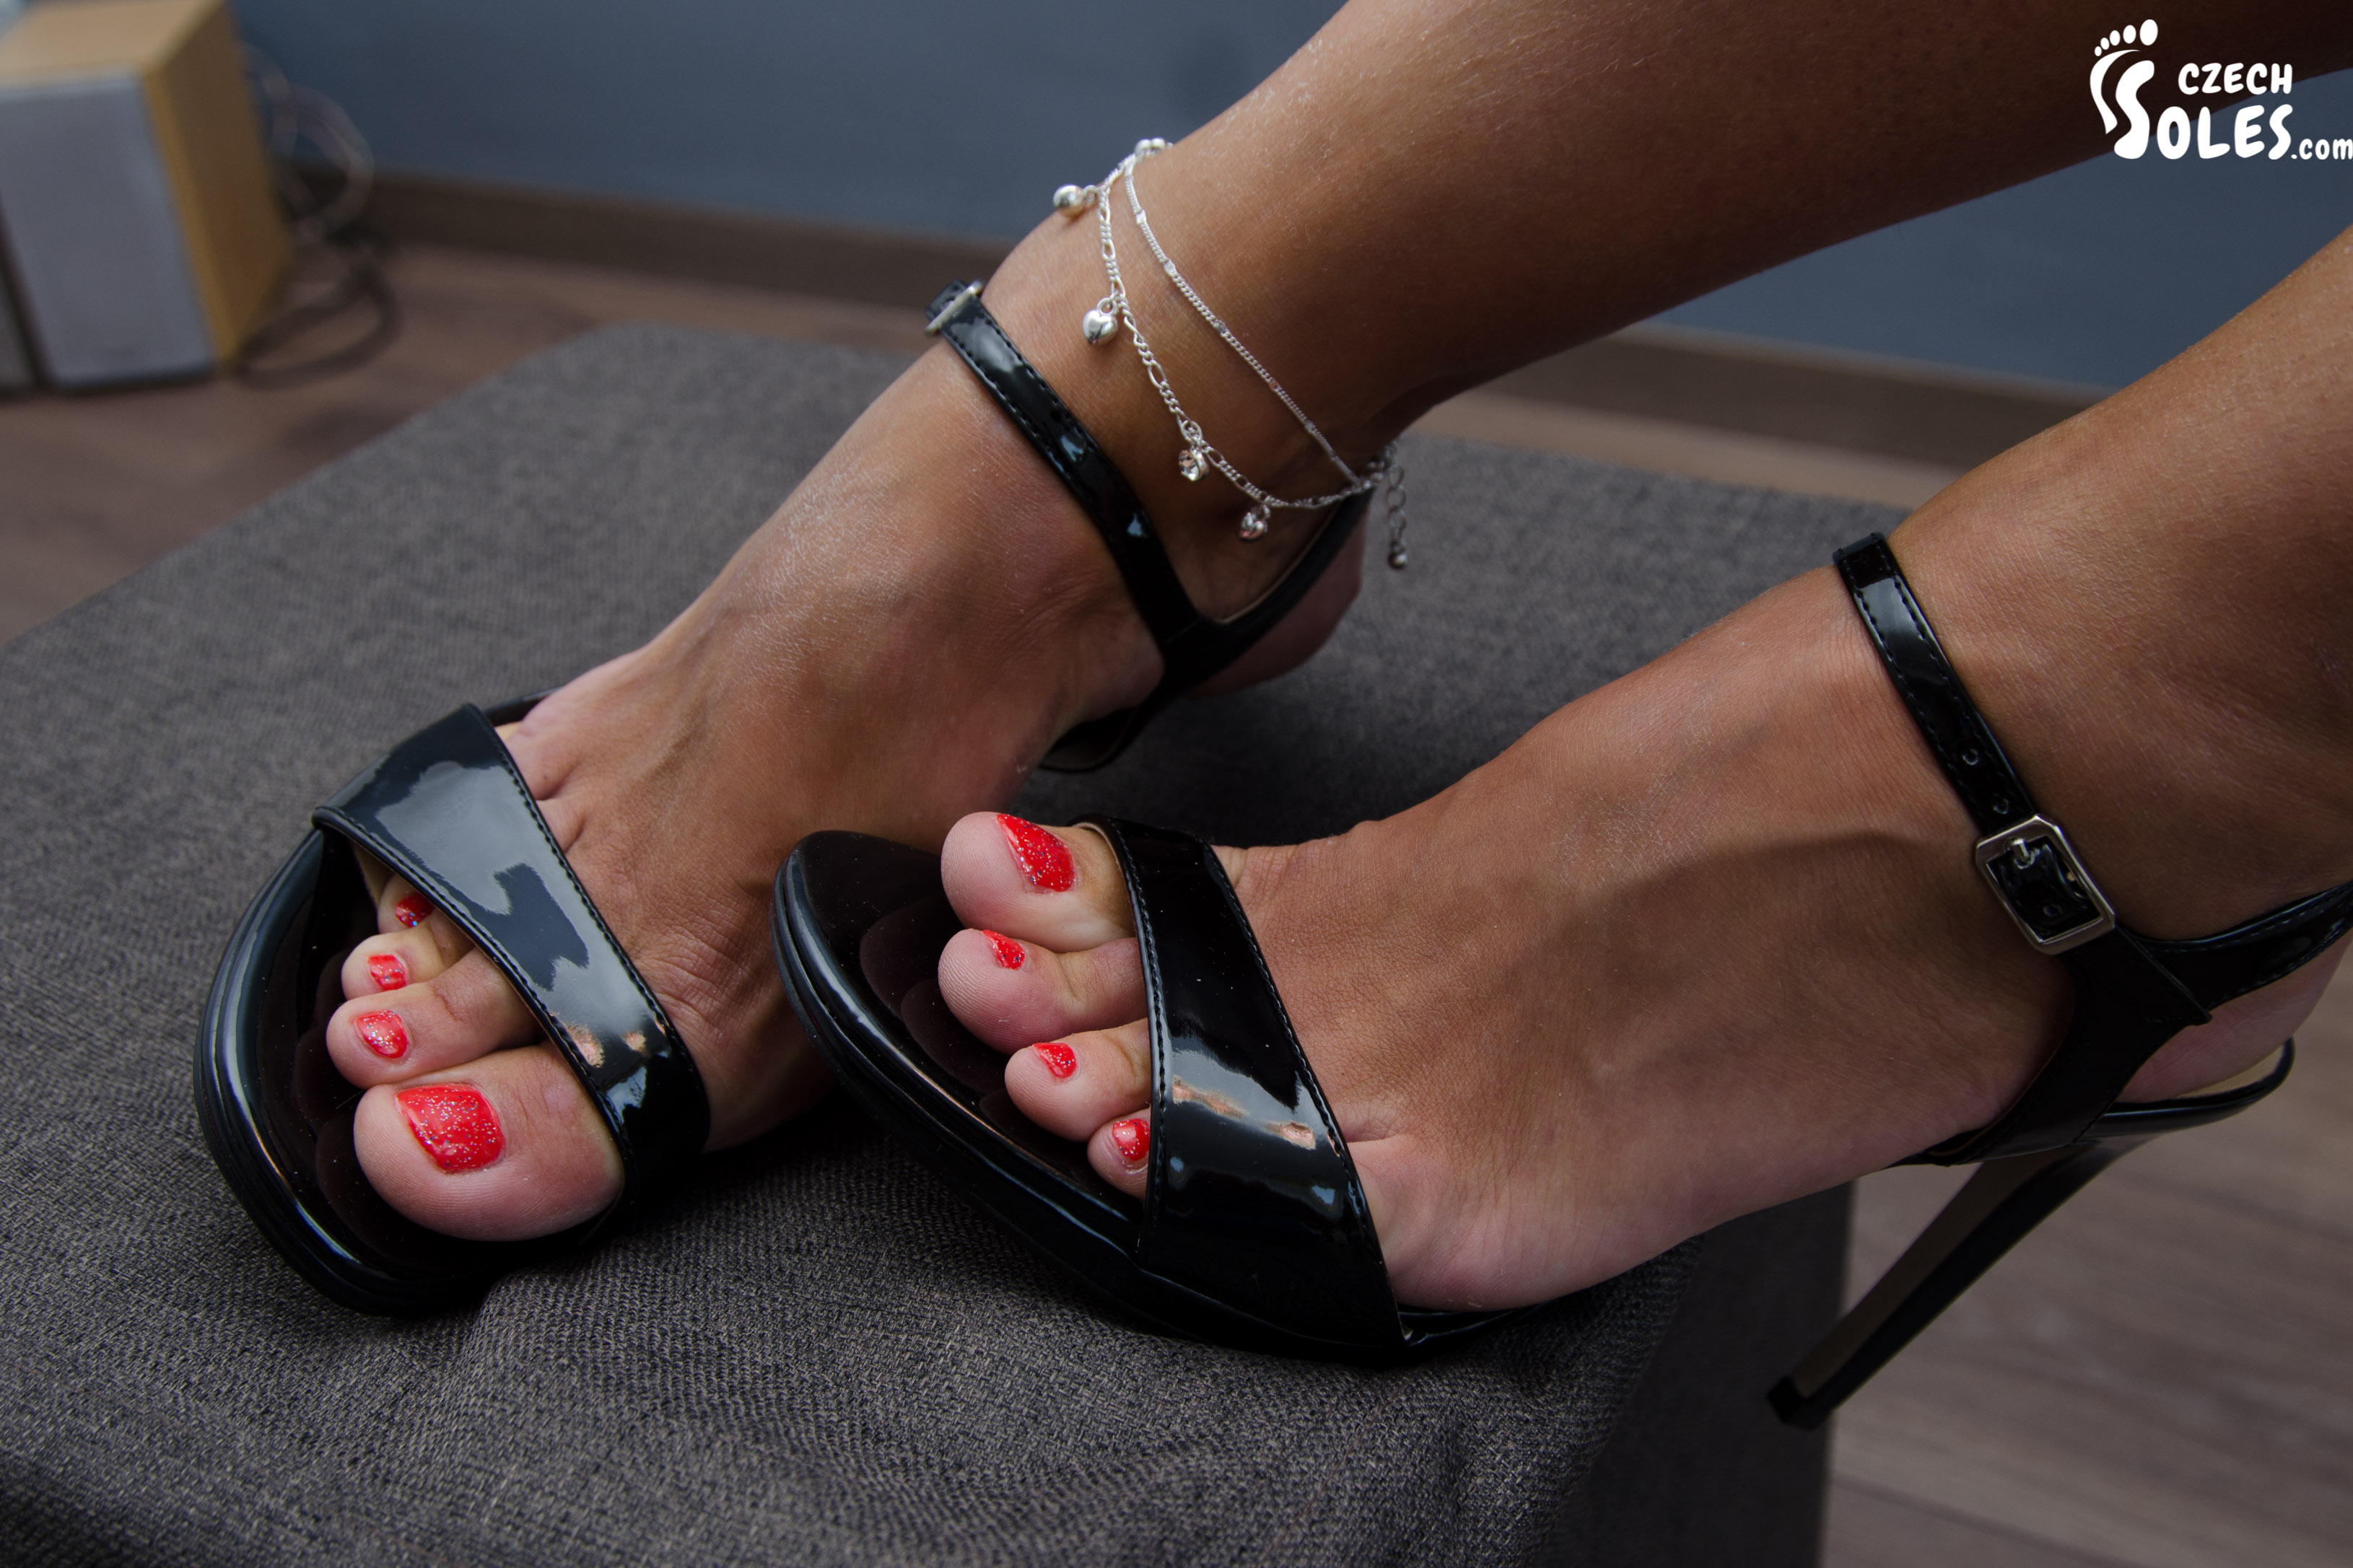 Worship our perfect feet and suck our tiny toes - 1 part 3